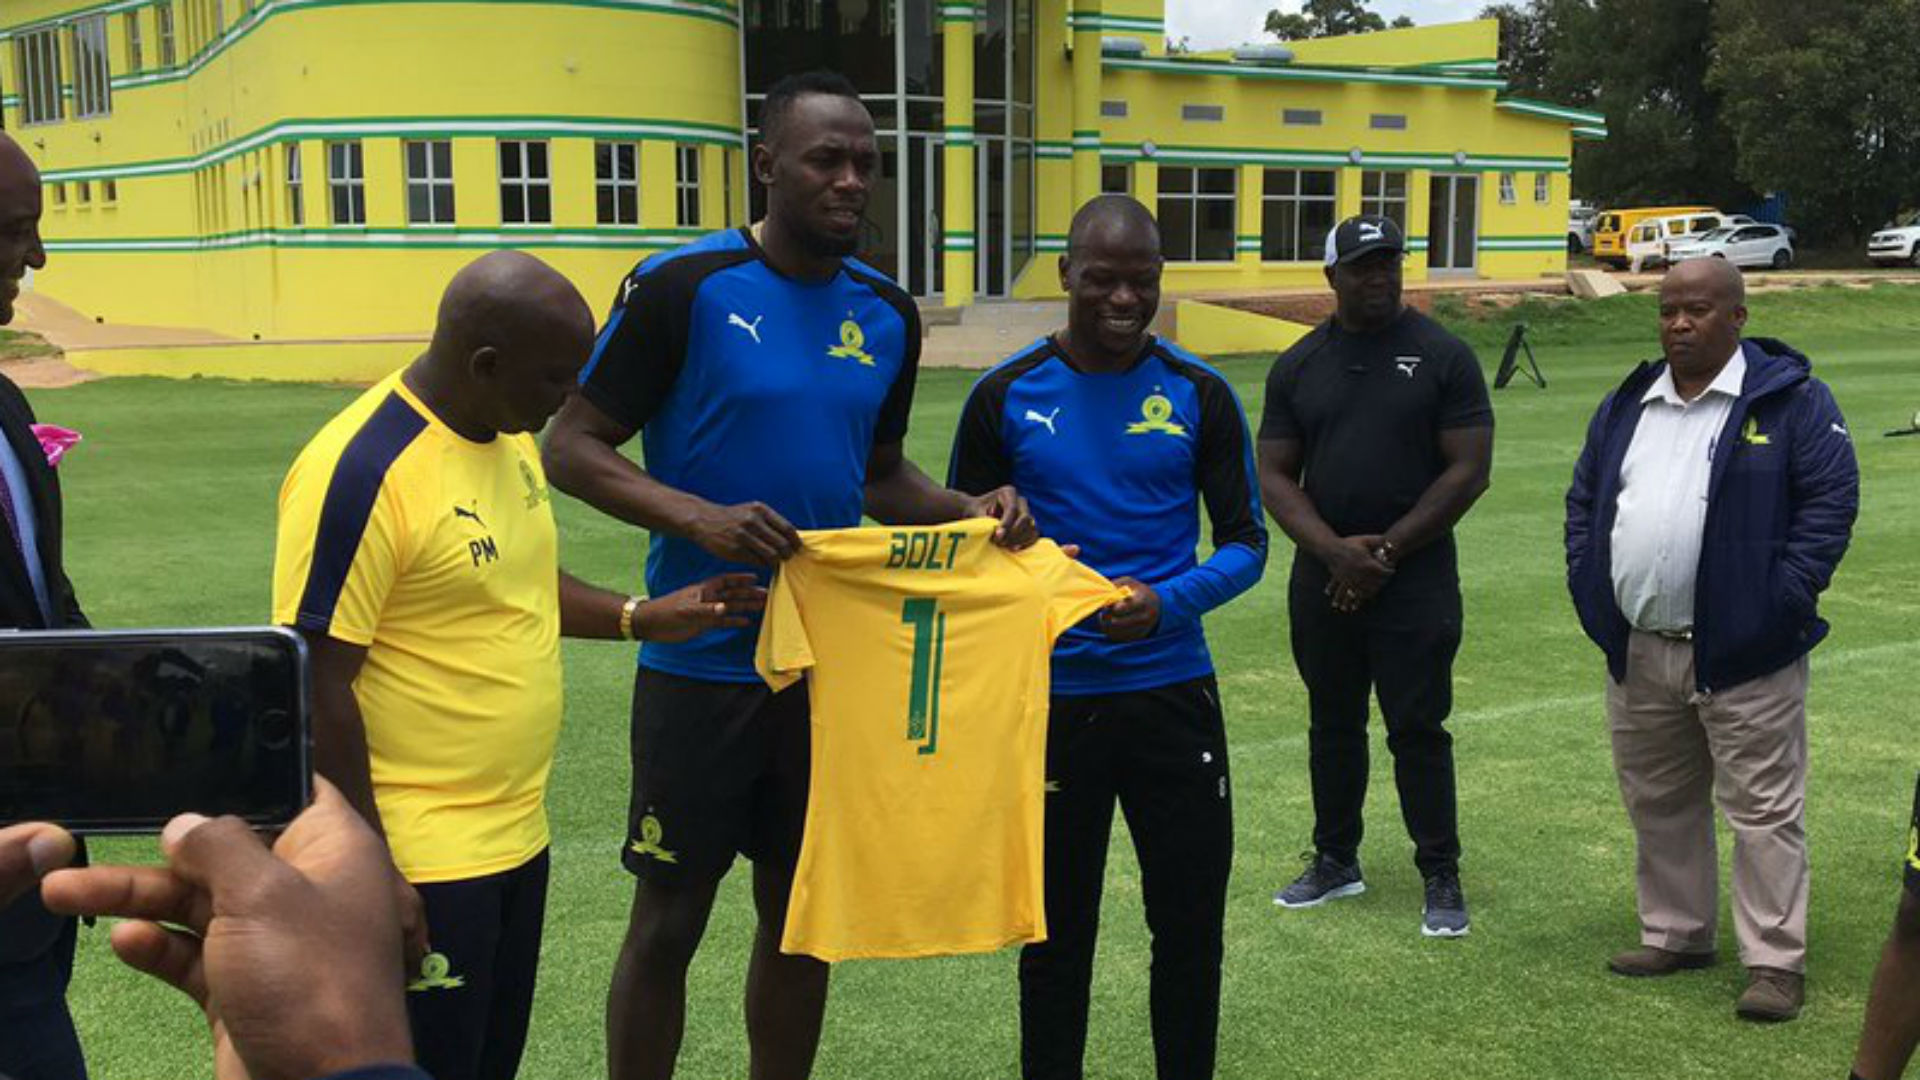 Mosimane runs Bolt ragged at Sundowns' training session